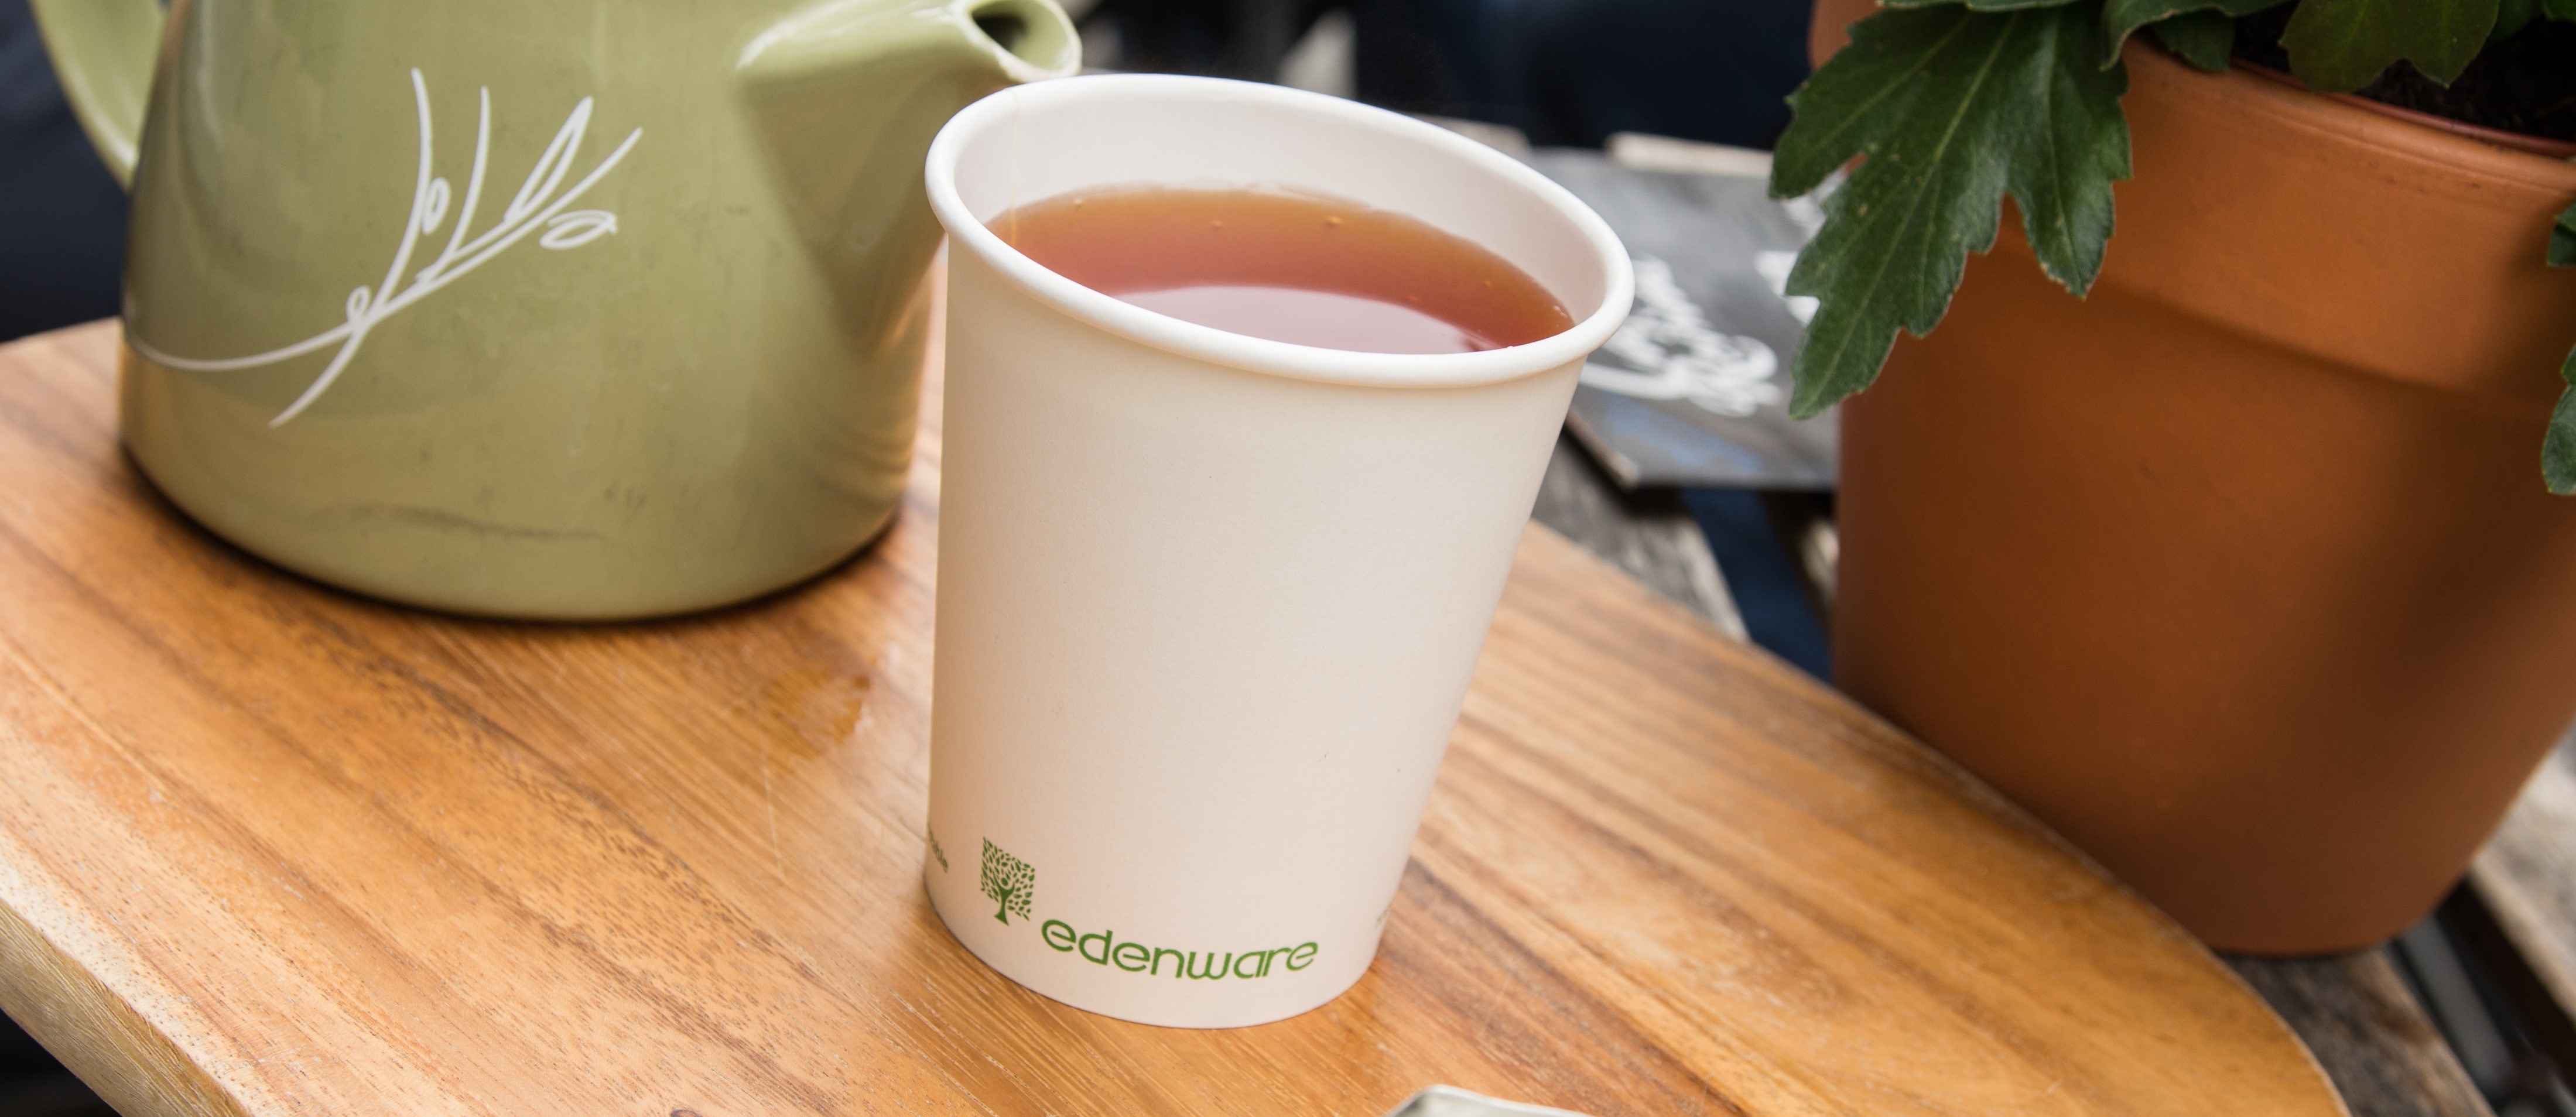 Compostable Cups and Accessories